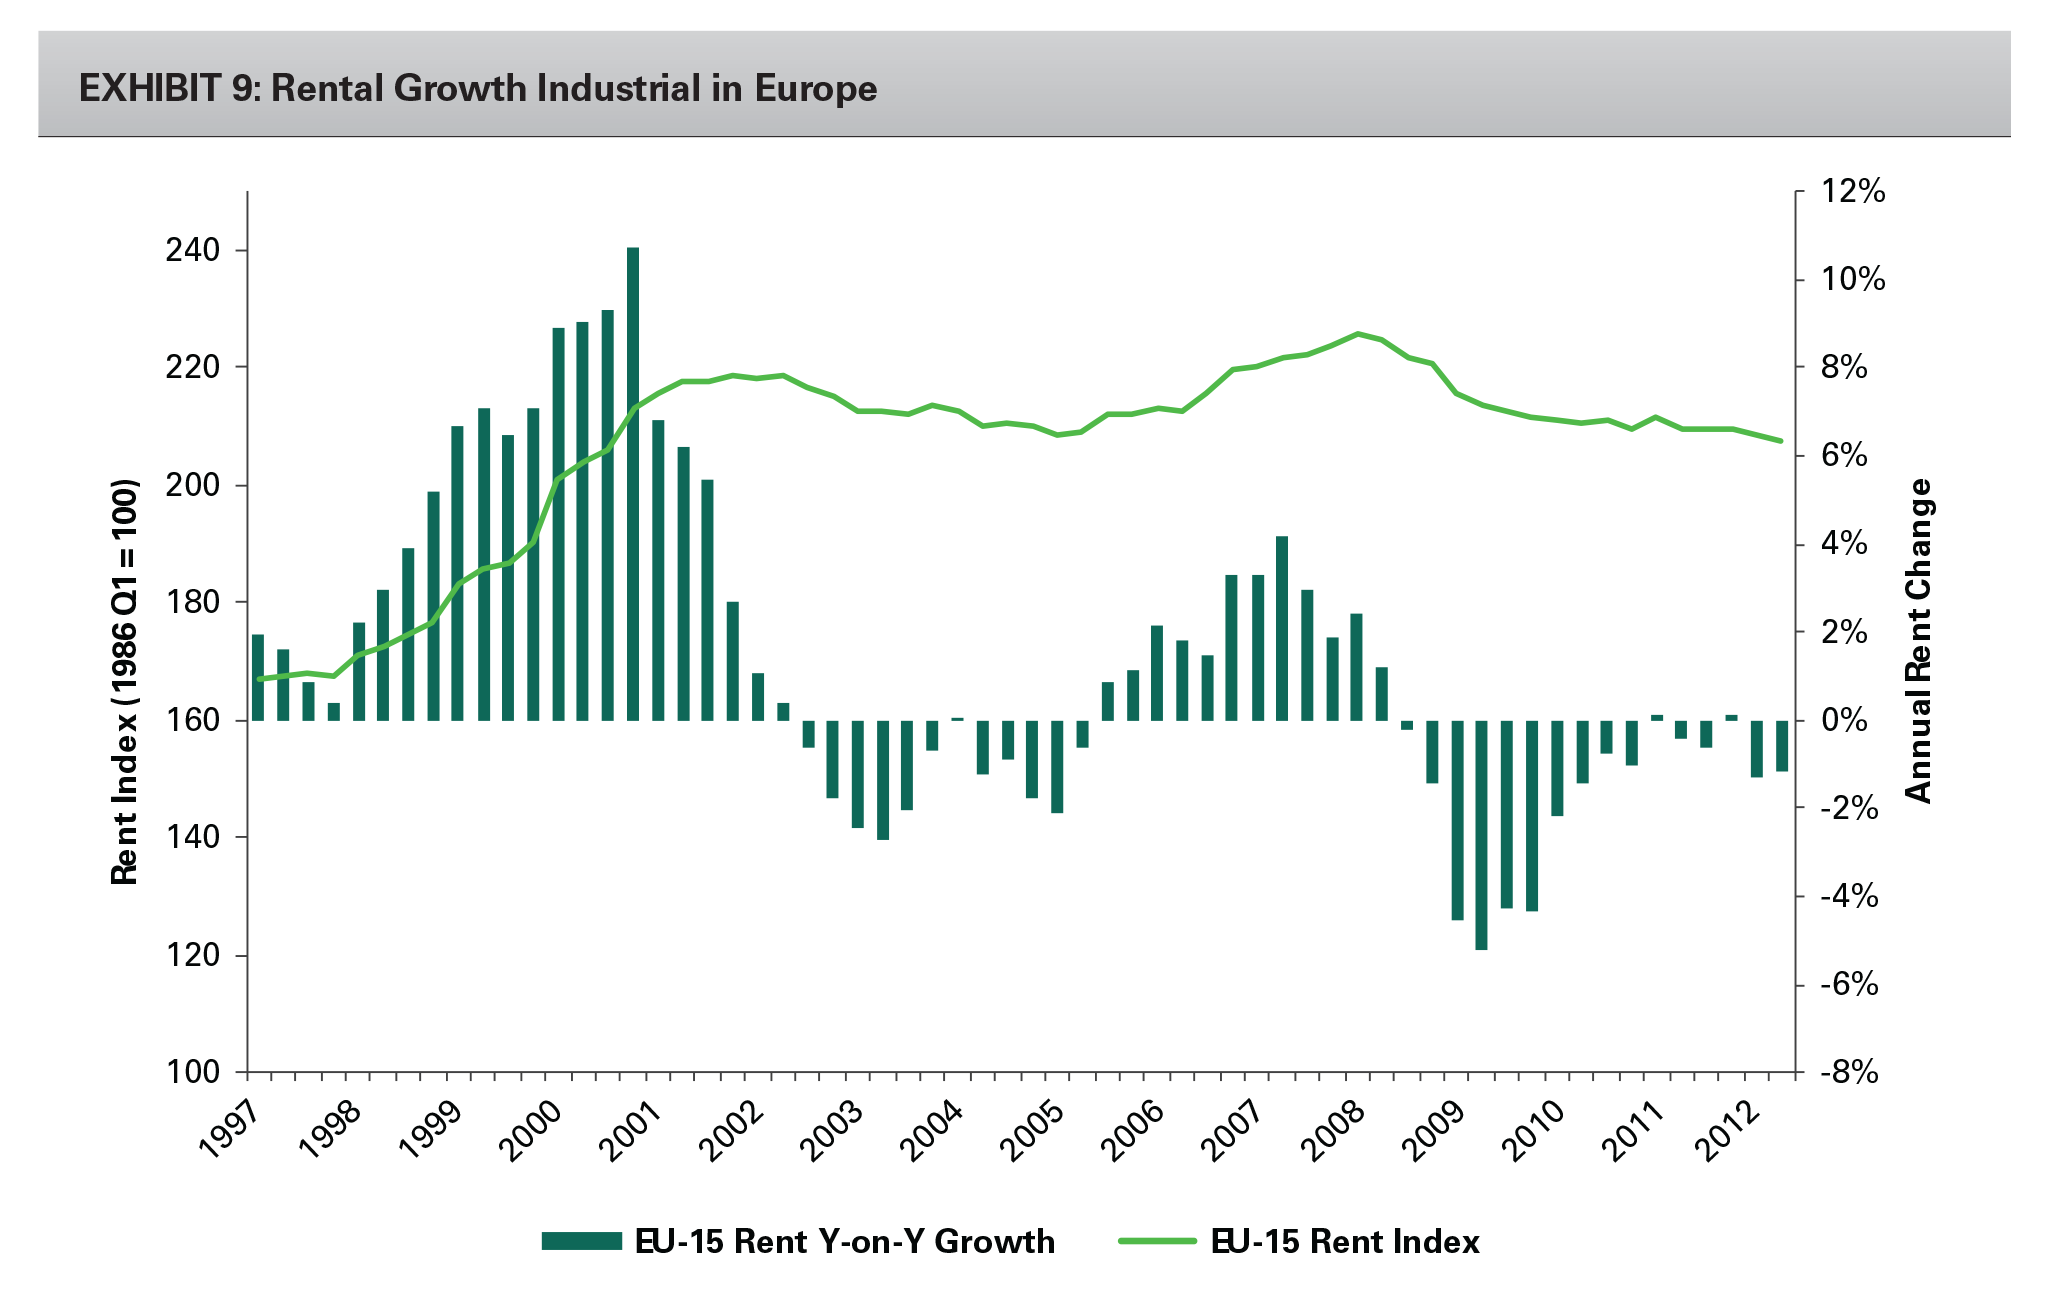 EXHIBIT 9: Rental Growth Industrial in Europe